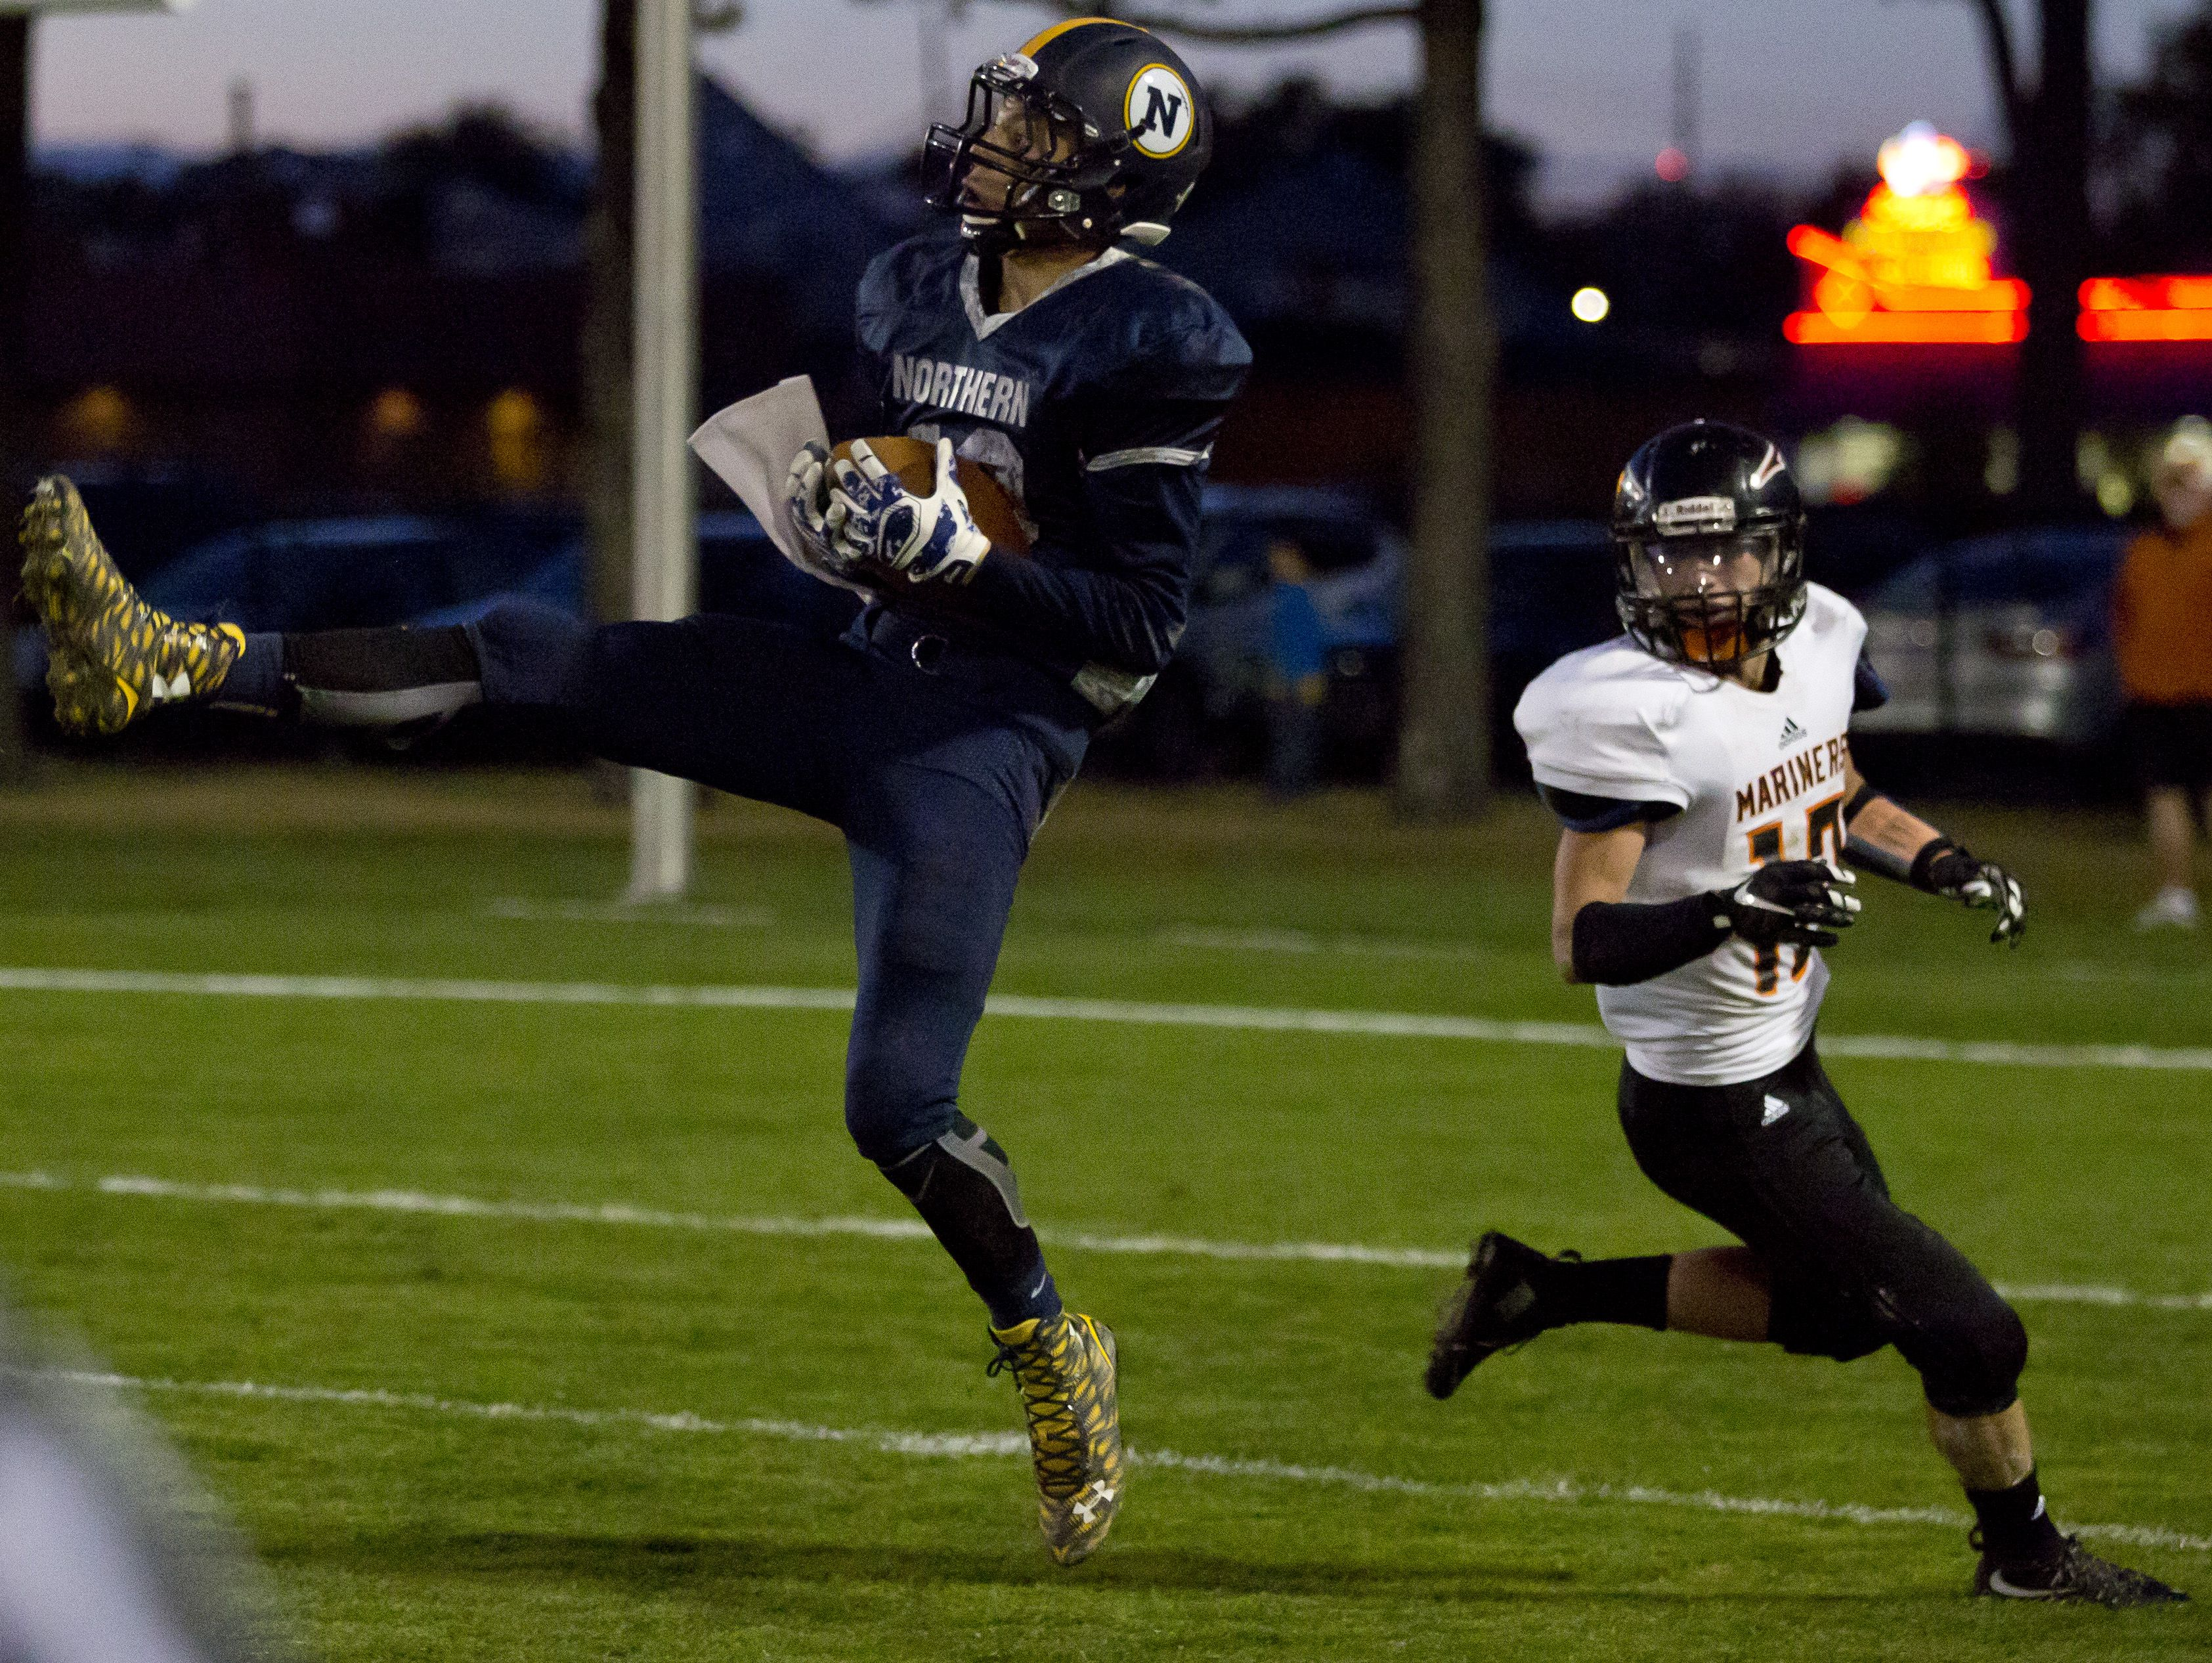 Port Huron Northern senior Geyrd Welsh catches a pass in front of Marine City junior Ryan Alexander during a football game Friday, October 9, 2015 at Memorial Stadium in Port Huron.